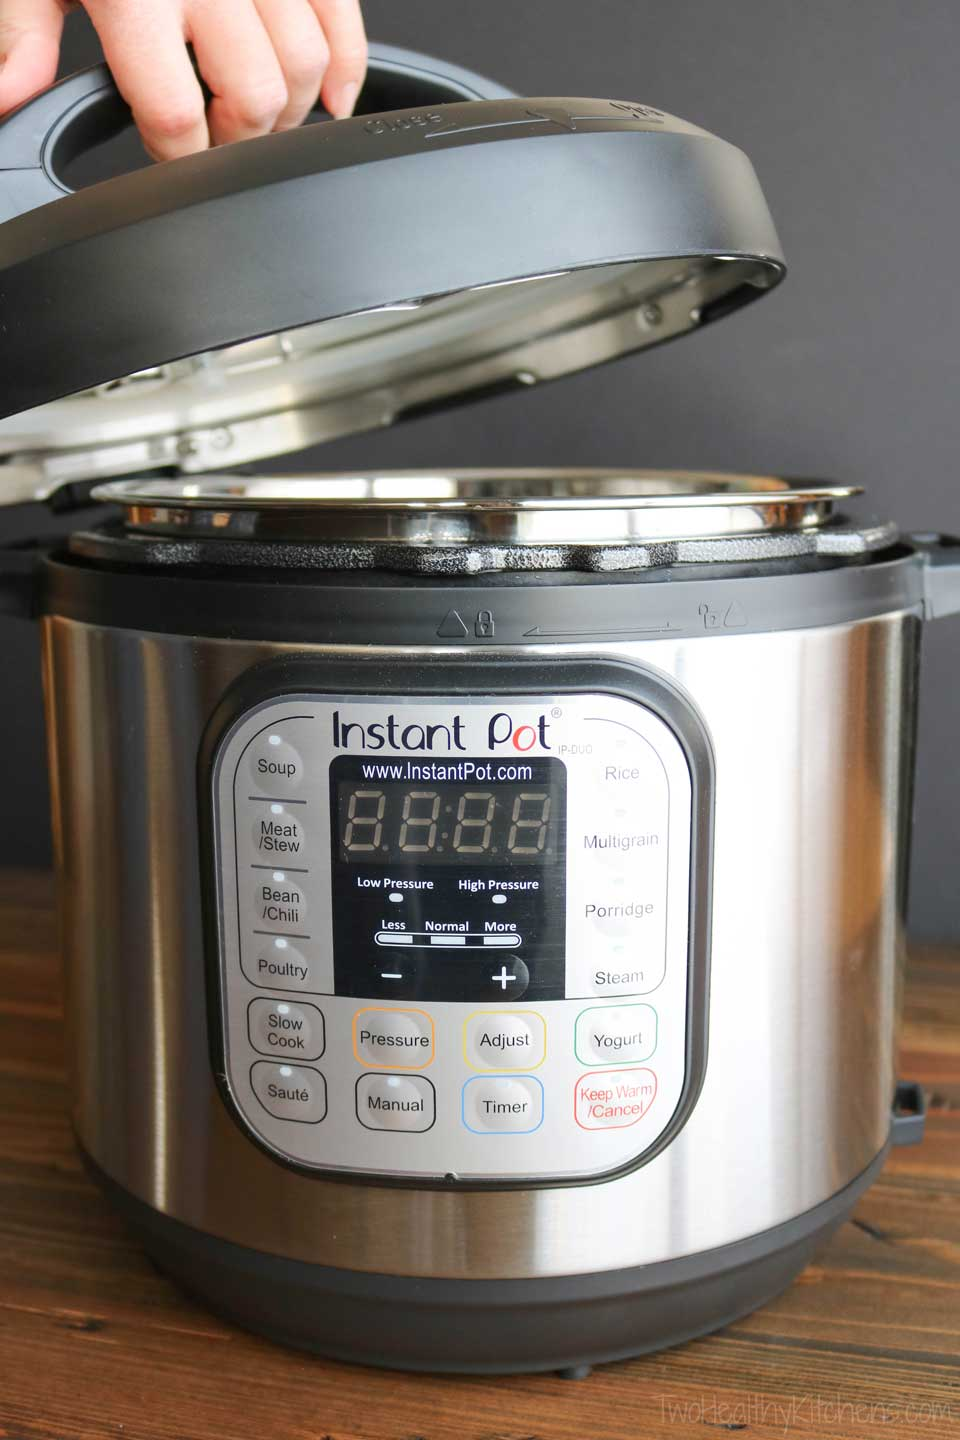 Instant Pot with lift being lifted off